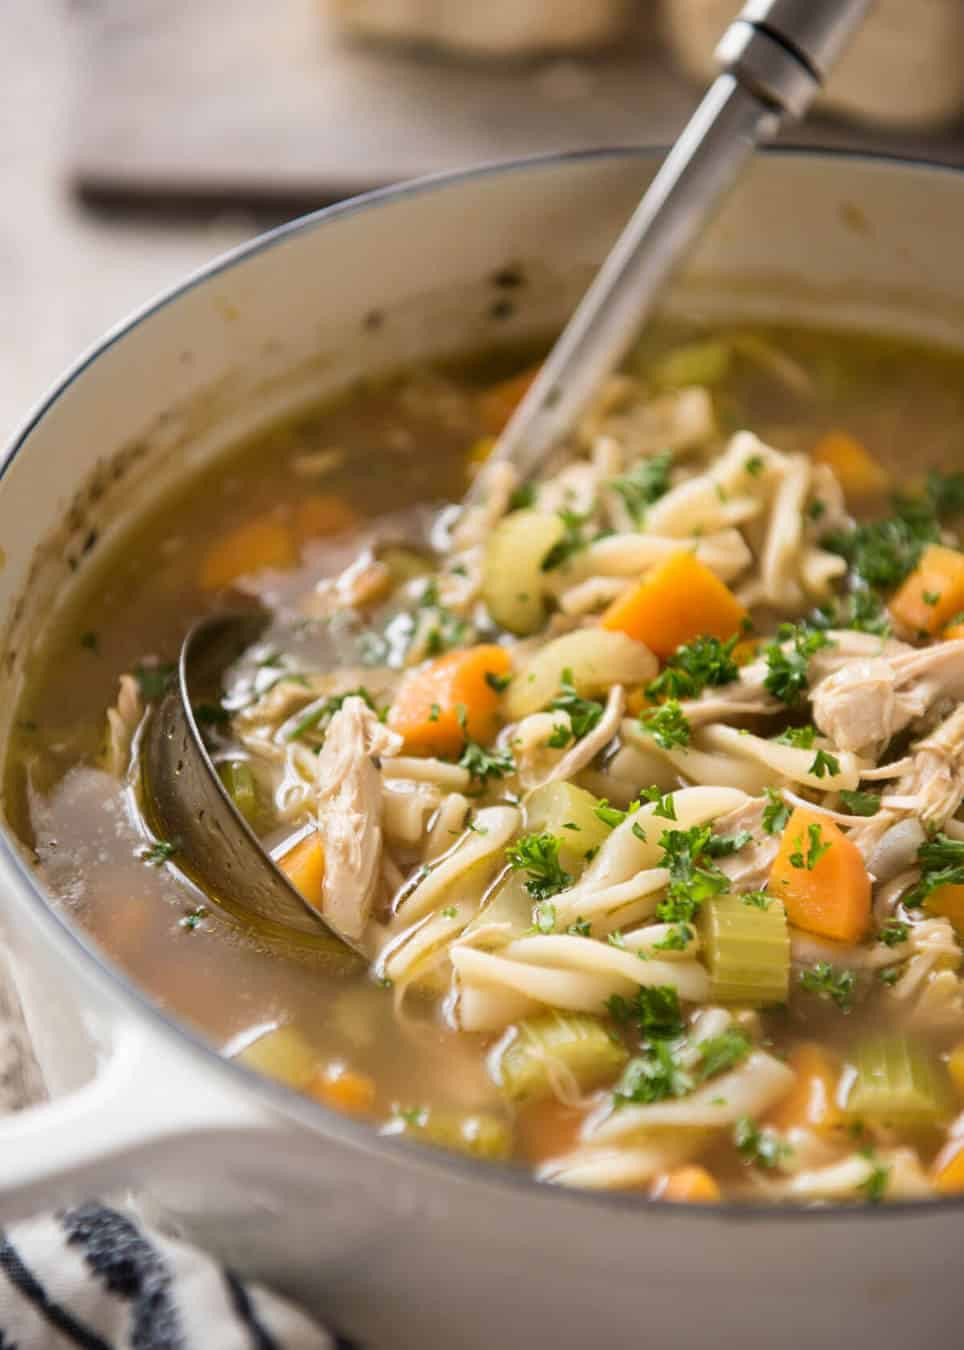 Campbell'S Chicken Noodle Soup  Homemade Chicken Noodle Soup From Scratch